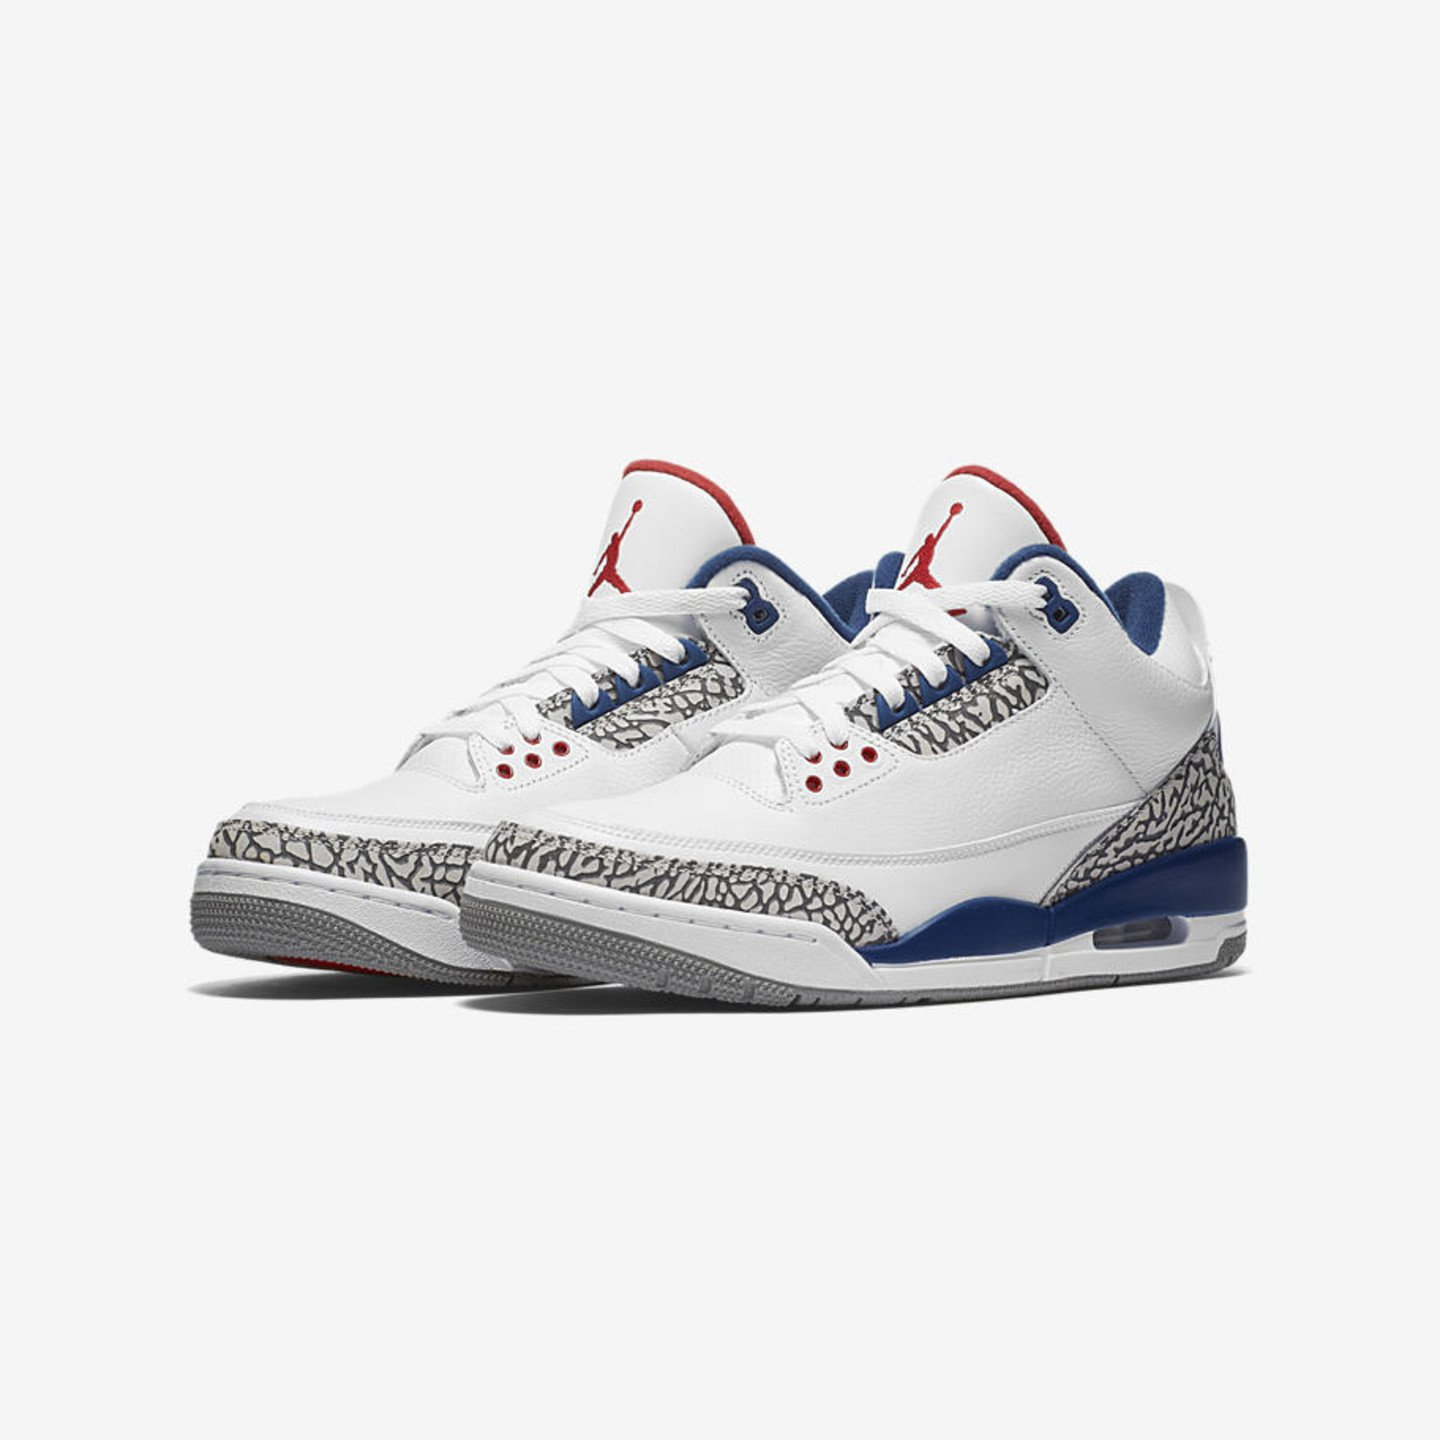 Jordan Air Jordan 3 Retro OG 'True Blue' GS True Blue / Cement Grey / Fire Red 854261-106-36.5